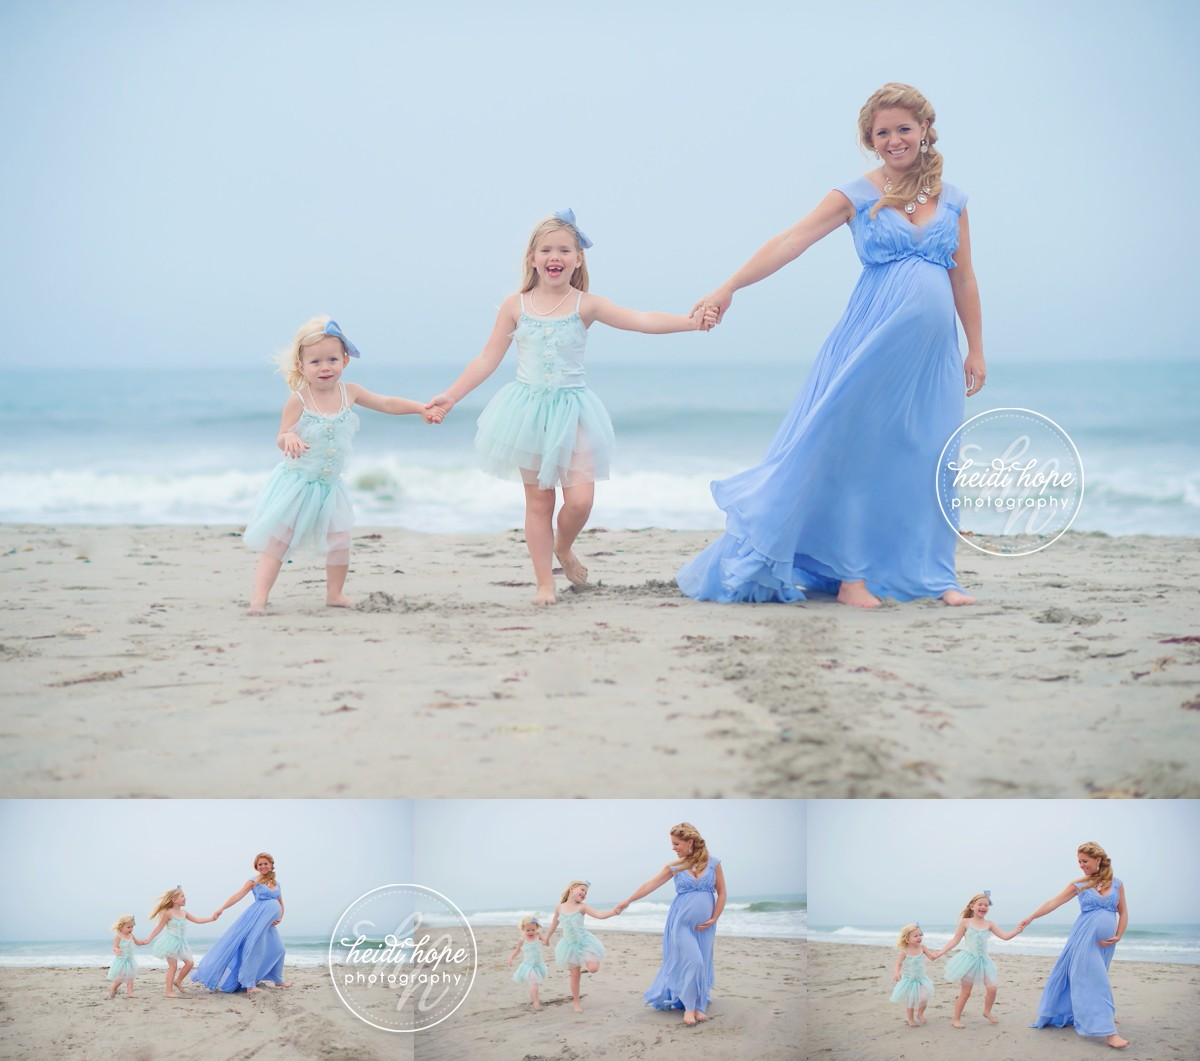 Our Maternity Session On The Beach In Rhode Island